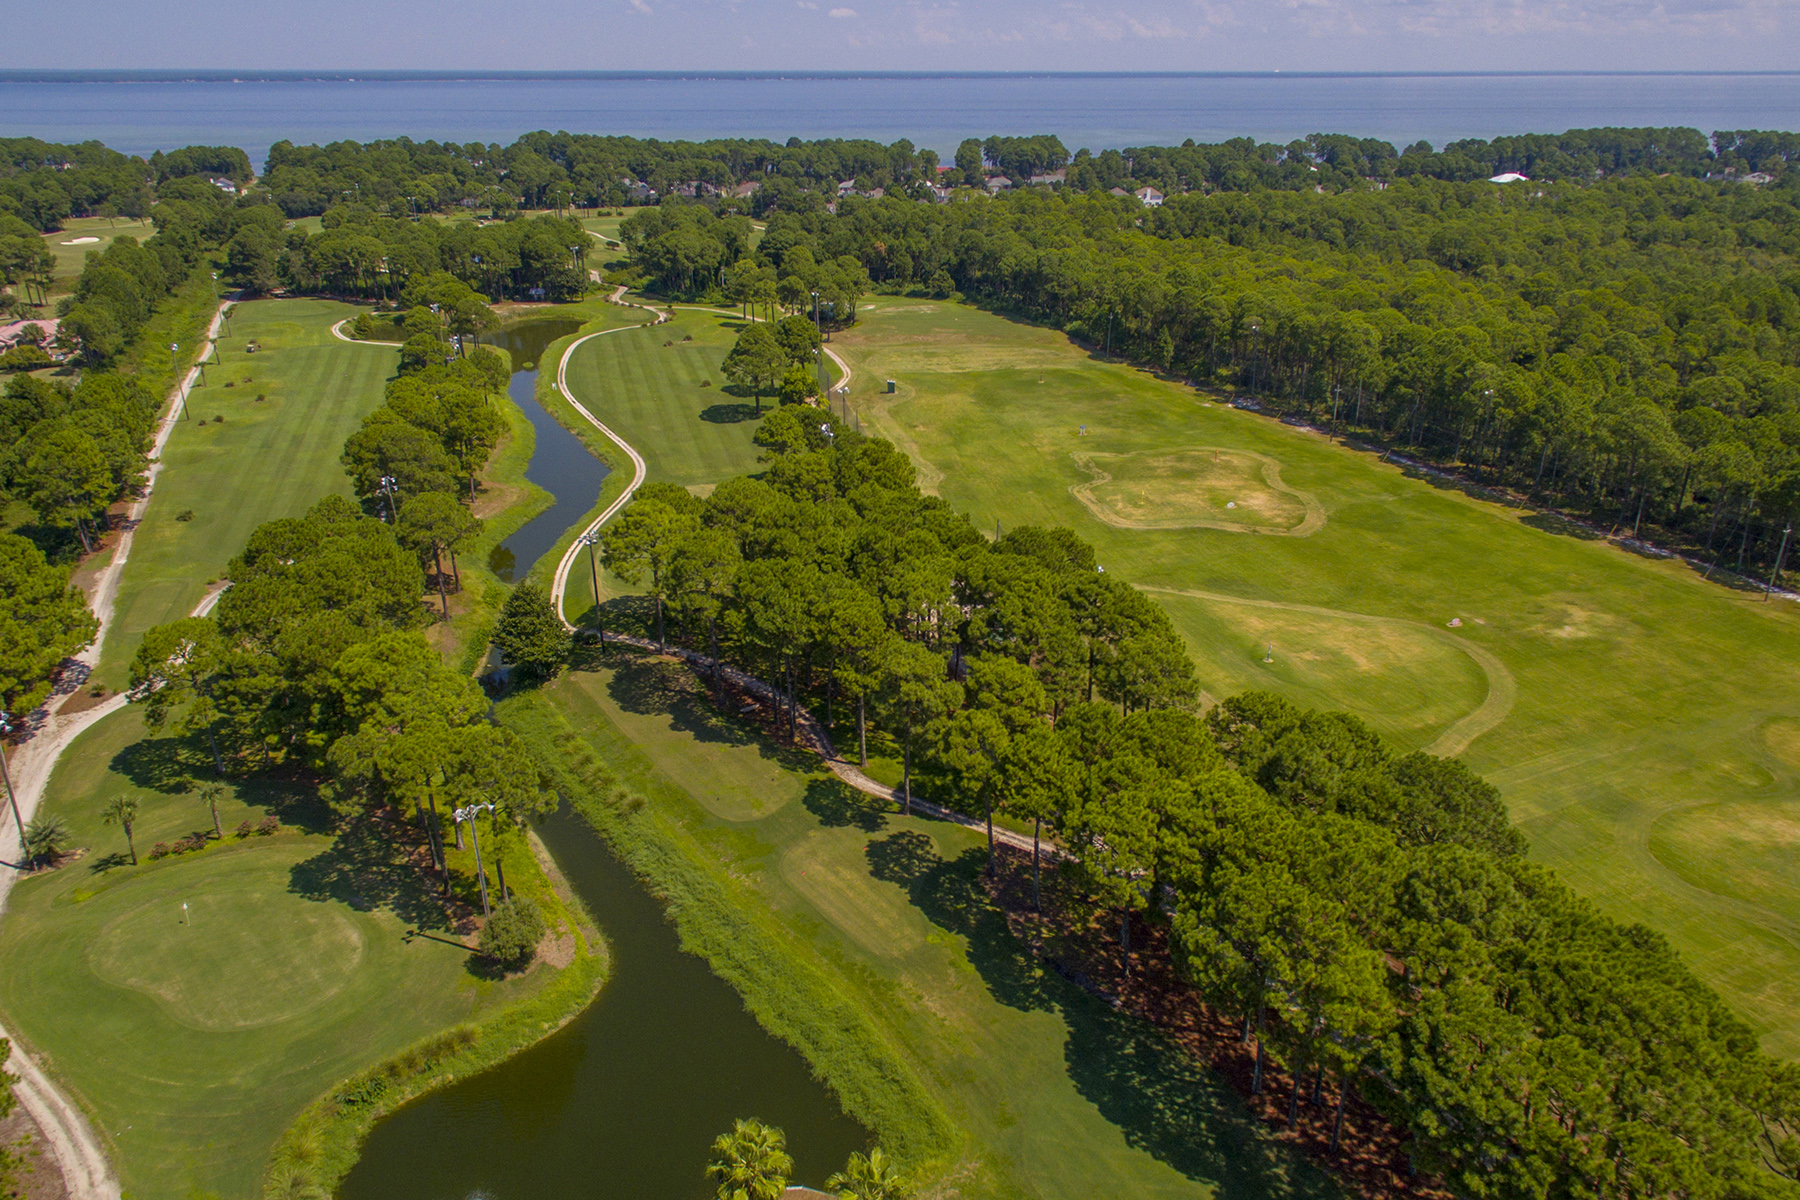 Terreno para Venda às RARE GOLF PROPERTY IS LAST OF ITS KIND 12958 W US Highway 98 Miramar Beach, Florida, 32550 Estados Unidos